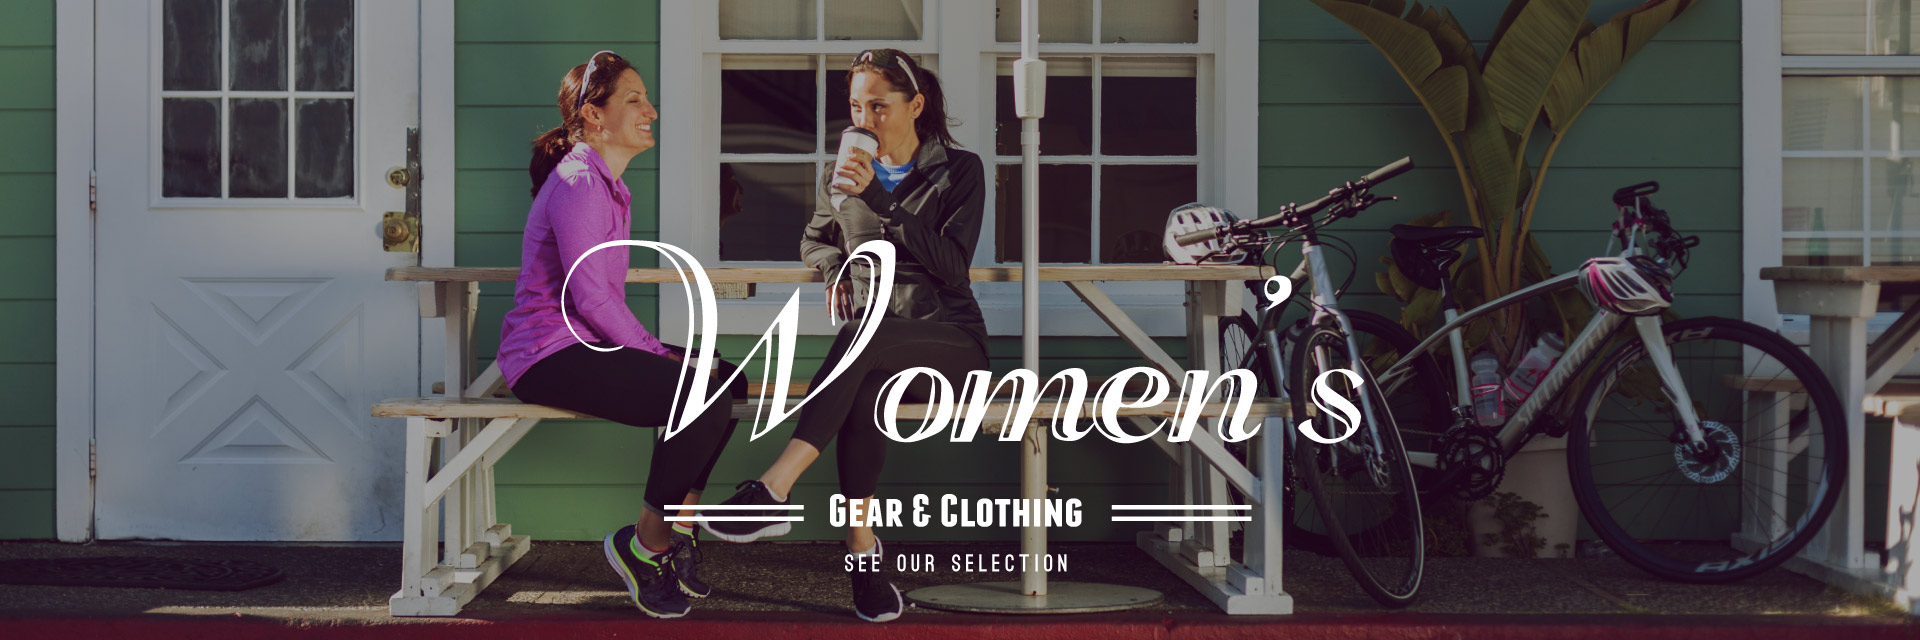 Shop Women's Gear and Clothing